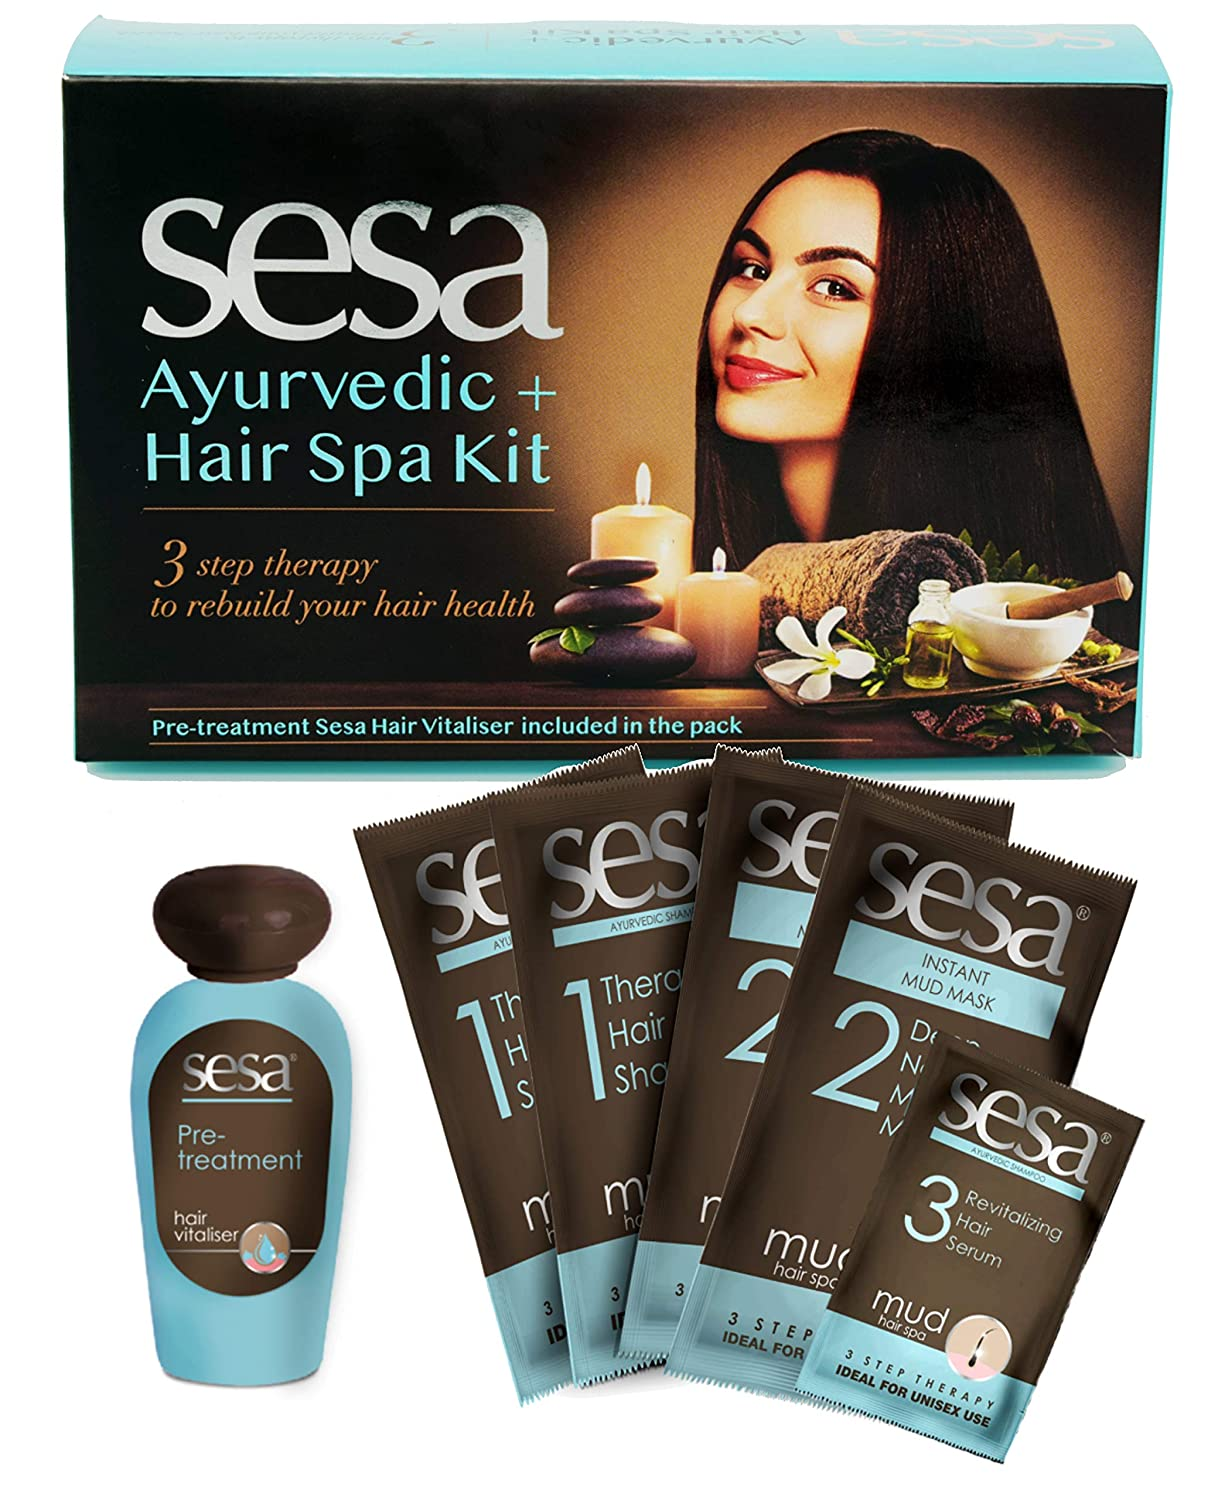 Sesa Ayurvedic + Hair Spa : Hair spa kit